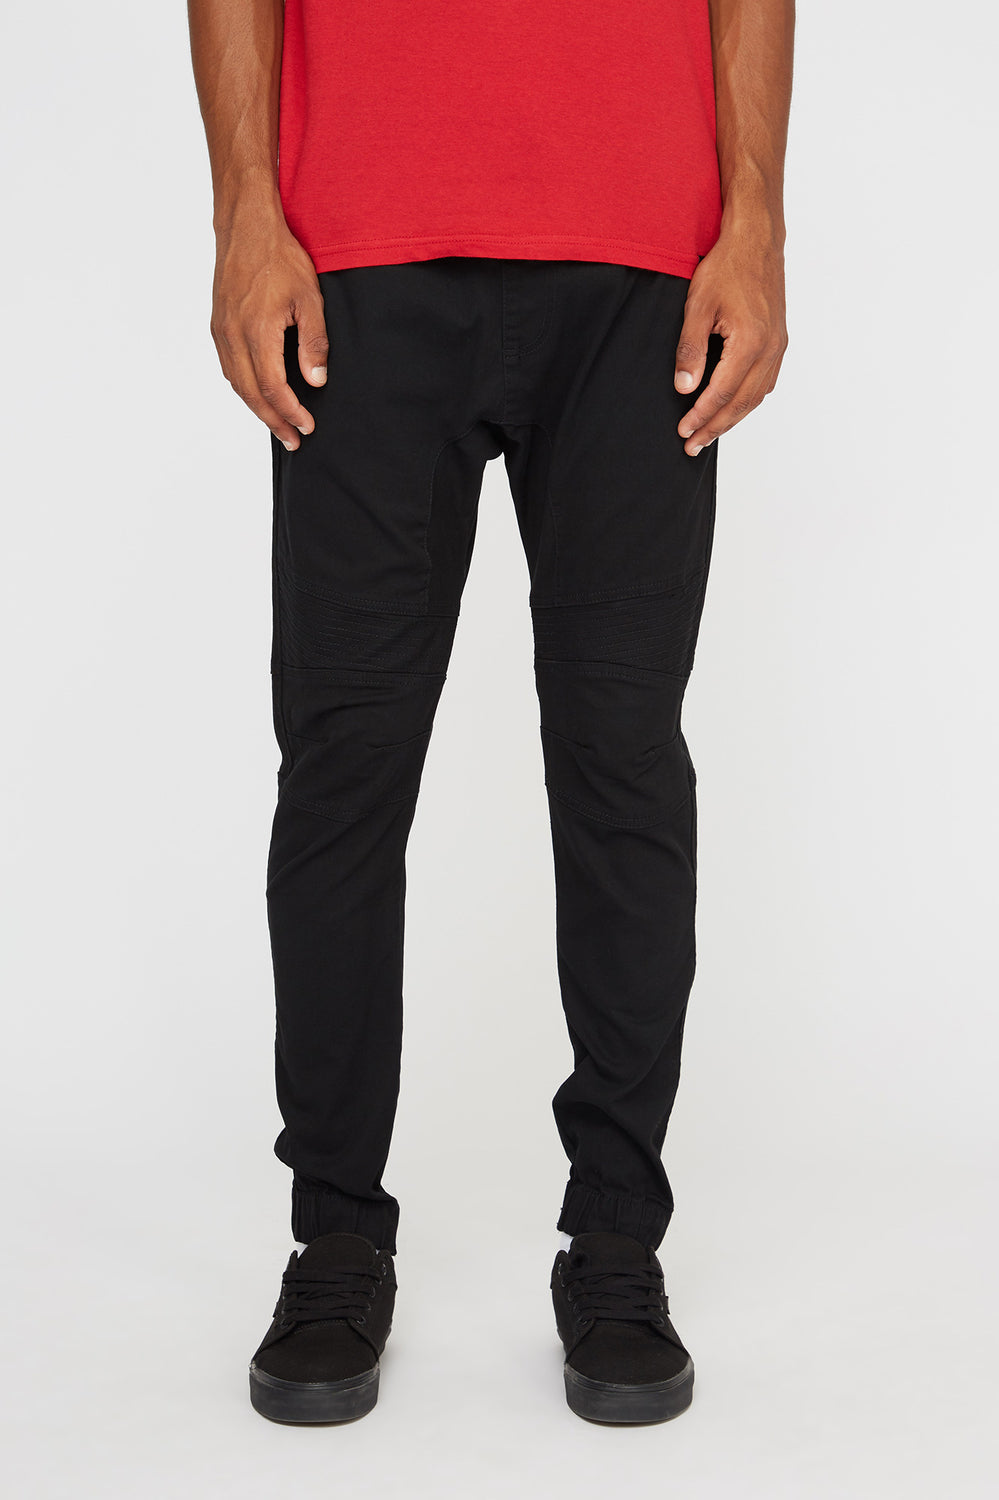 West49 Mens Moto Jogger Black